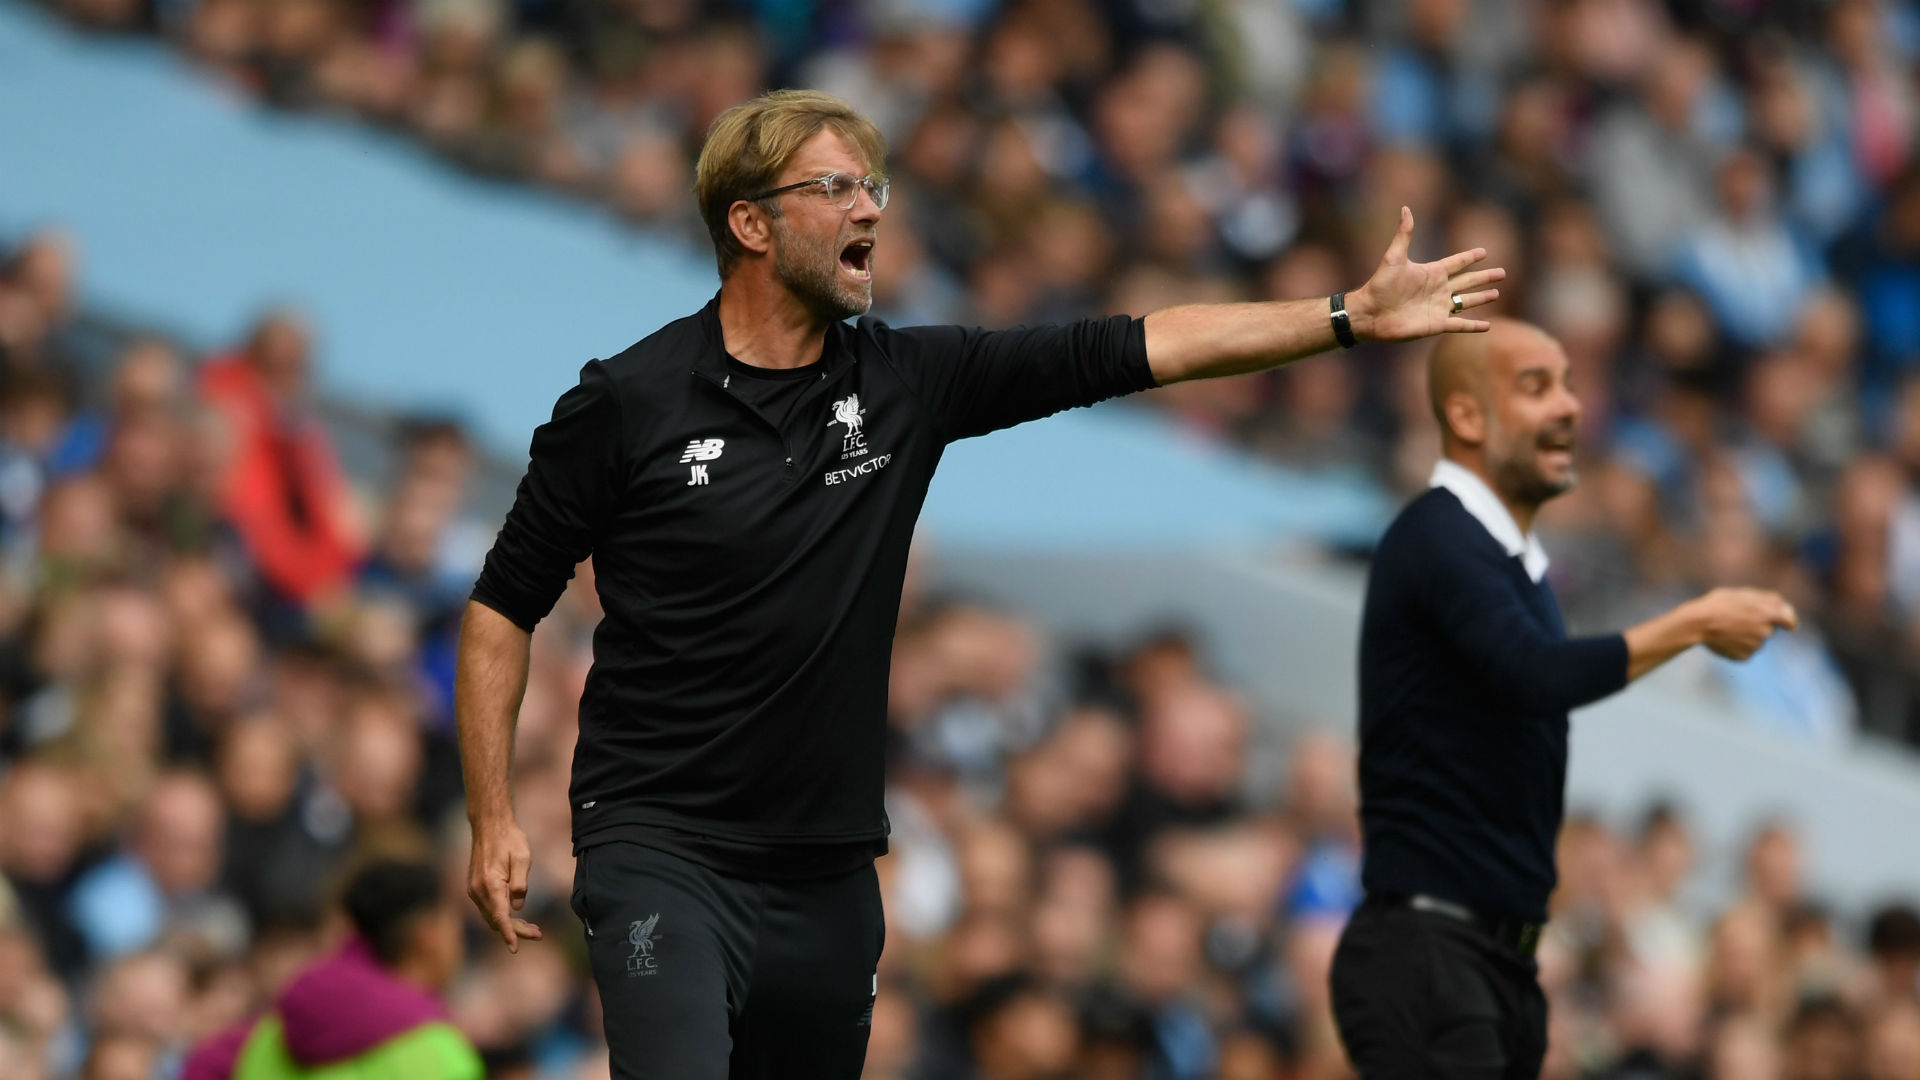 Manchester City demolish Liverpool as Klopp suffers heaviest defeat